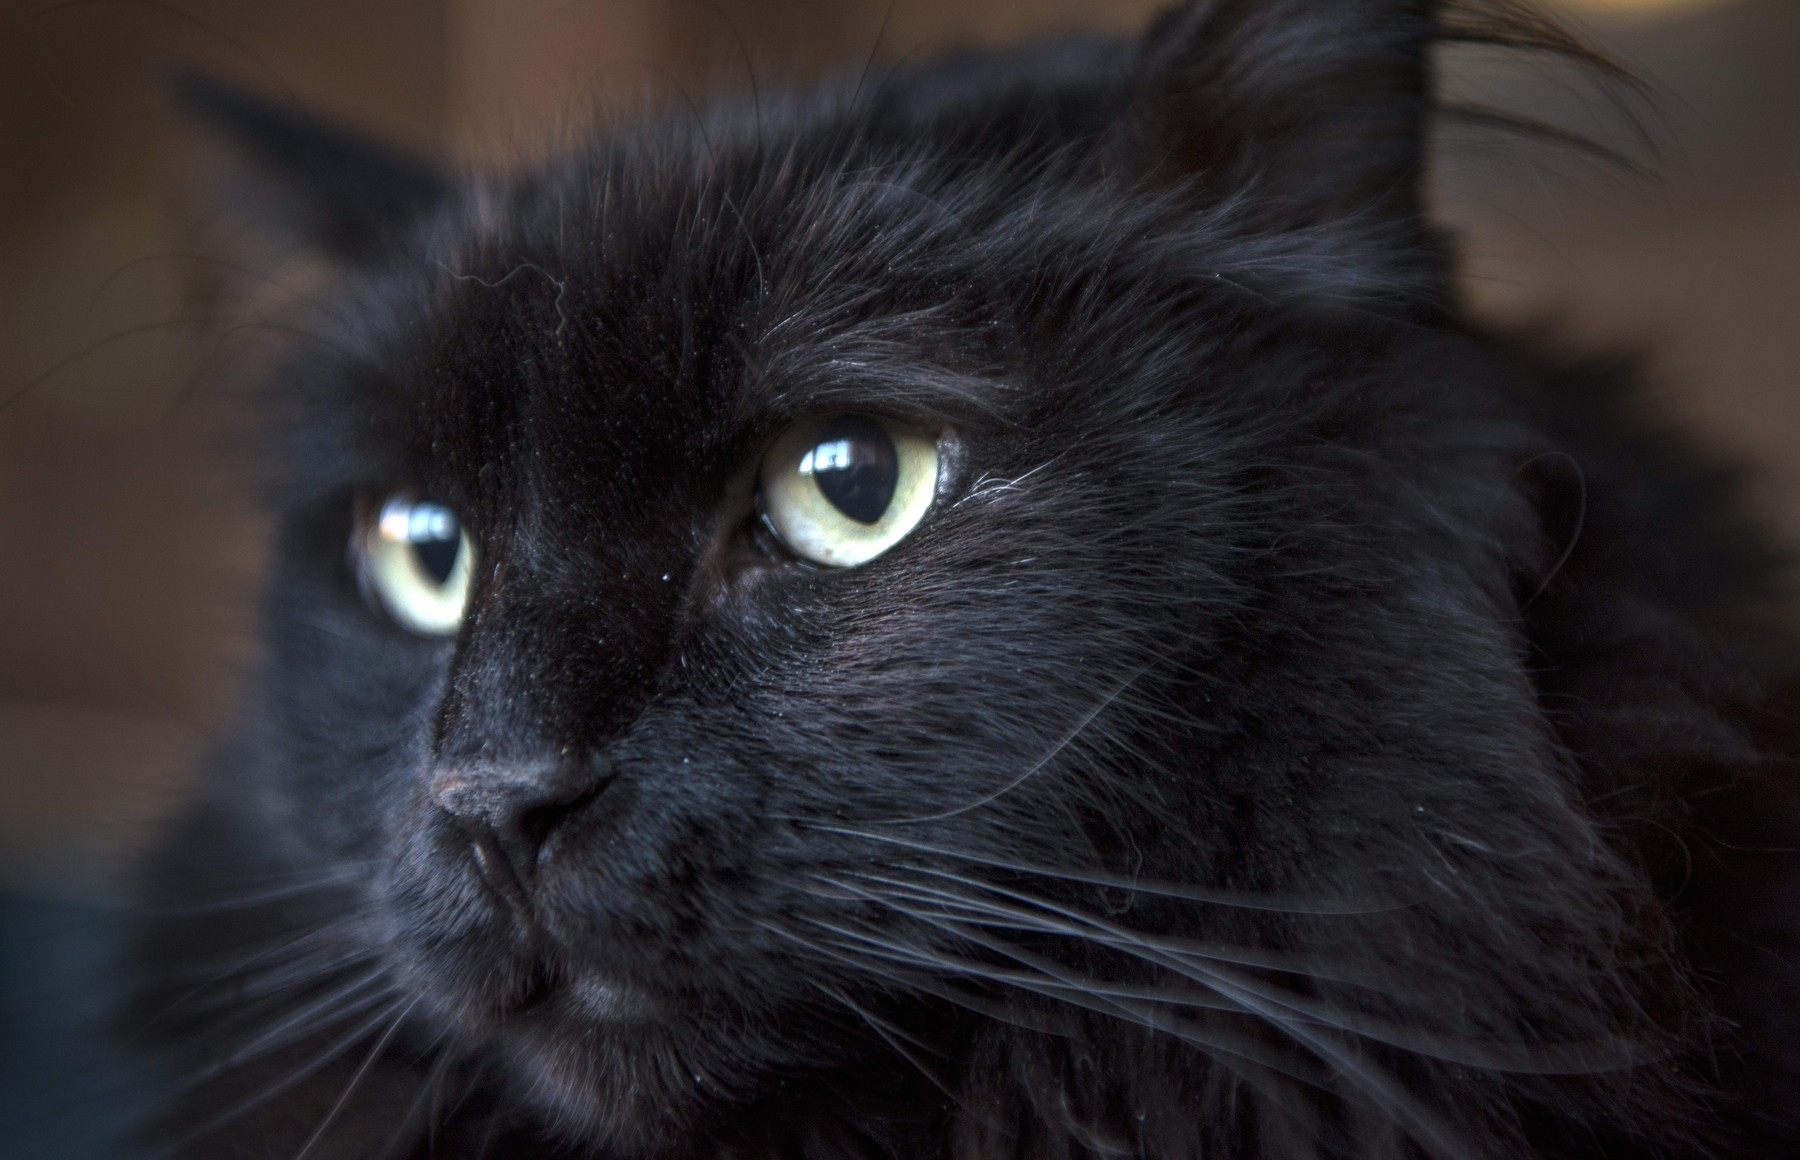 November 18, 2019, USA: Sasha, a black cat that was picked up off the street in Santa Fe, is be reunited with his owner in Portland Oregon after being lost around 5 years ago. Sasha is at the Santa Fe Animal Shelter and Humane Society, Monday November 18, 2019., Image: 483584223, License: Rights-managed, Restrictions: , Model Release: no, Credit line: Eddie Moore / Zuma Press / Profimedia